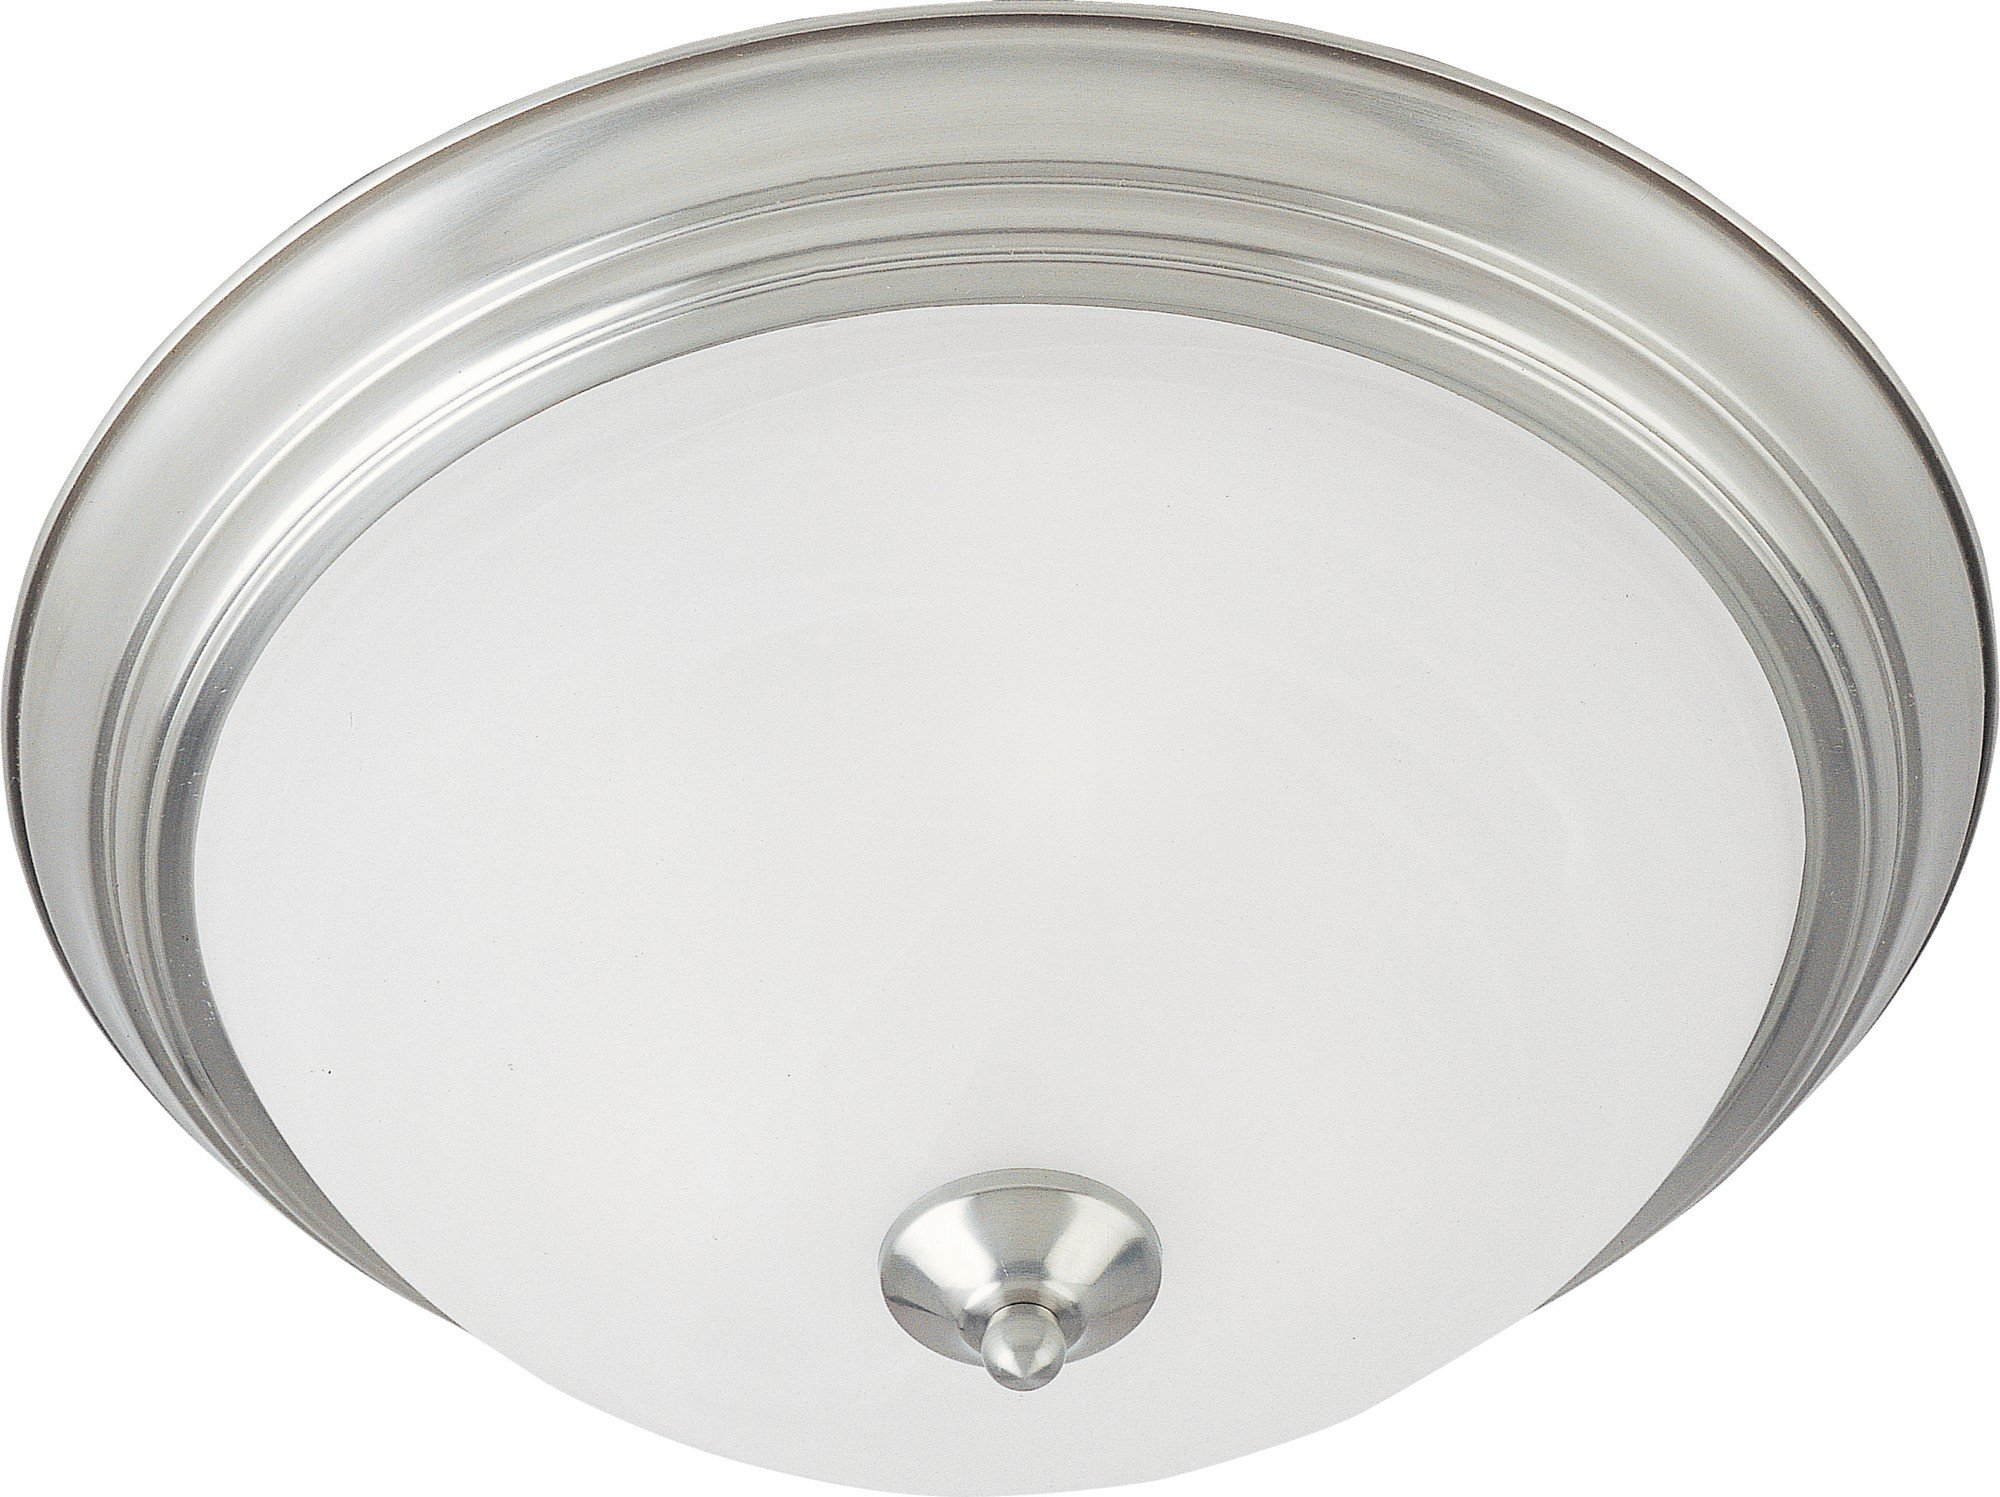 Maxim 5841MRSN Essentials 2-Light Flush Mount, Satin Nickel Finish, Marble Glass, MB Incandescent Incandescent Bulb , 60W Max., Dry Safety Rating, Standard Dimmable, Glass Shade Material, Rated Lumens